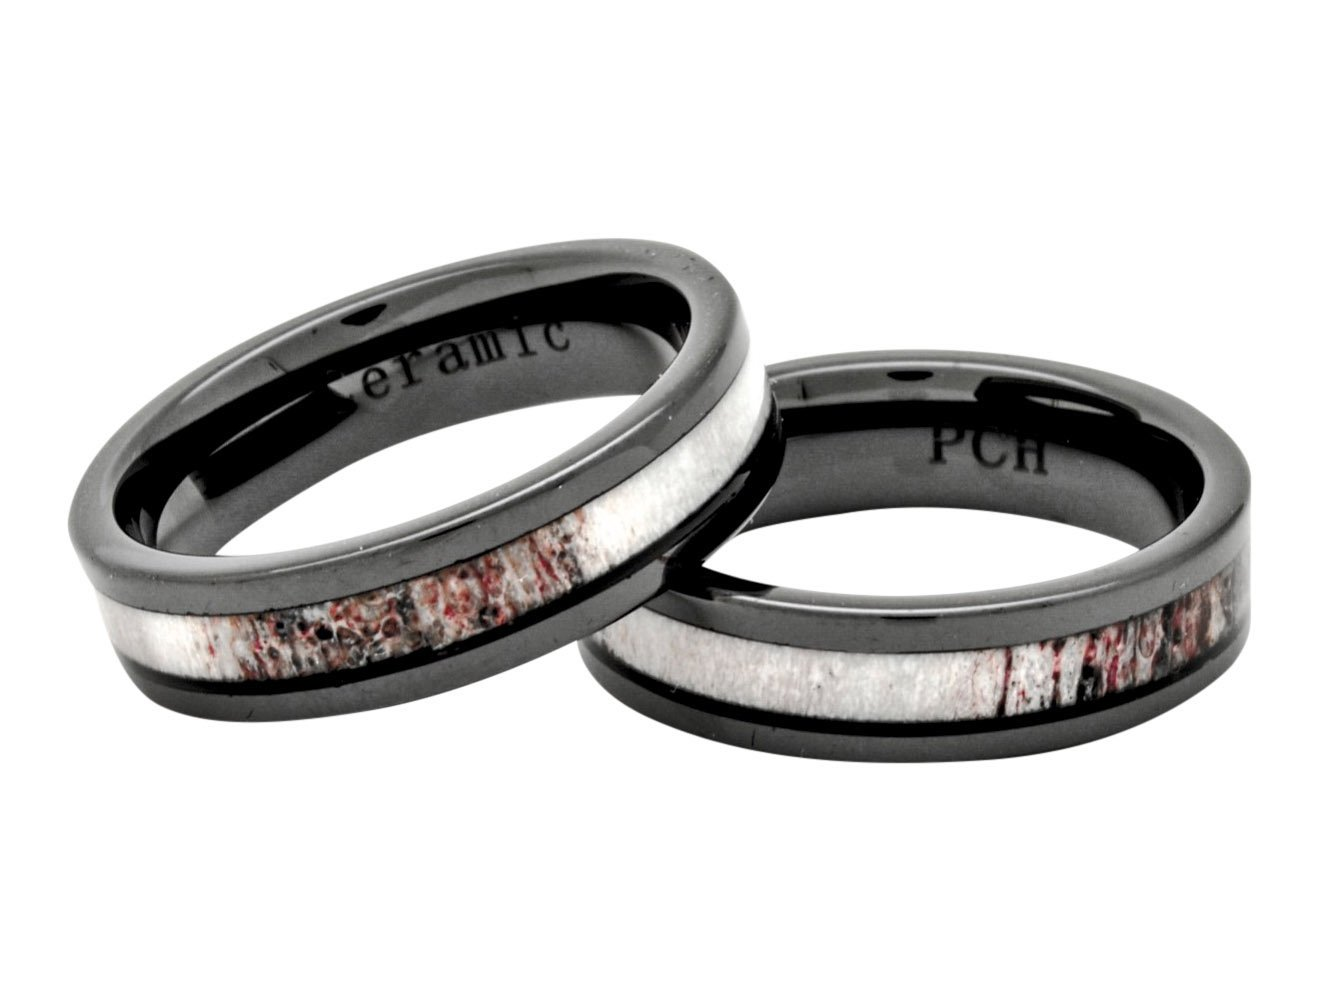 Deer Antler Ring in Black Ceramic 6mm Comfort Fit Wedding Band Size 7 to 12 (11.5) by PCH Jewelers (Image #2)